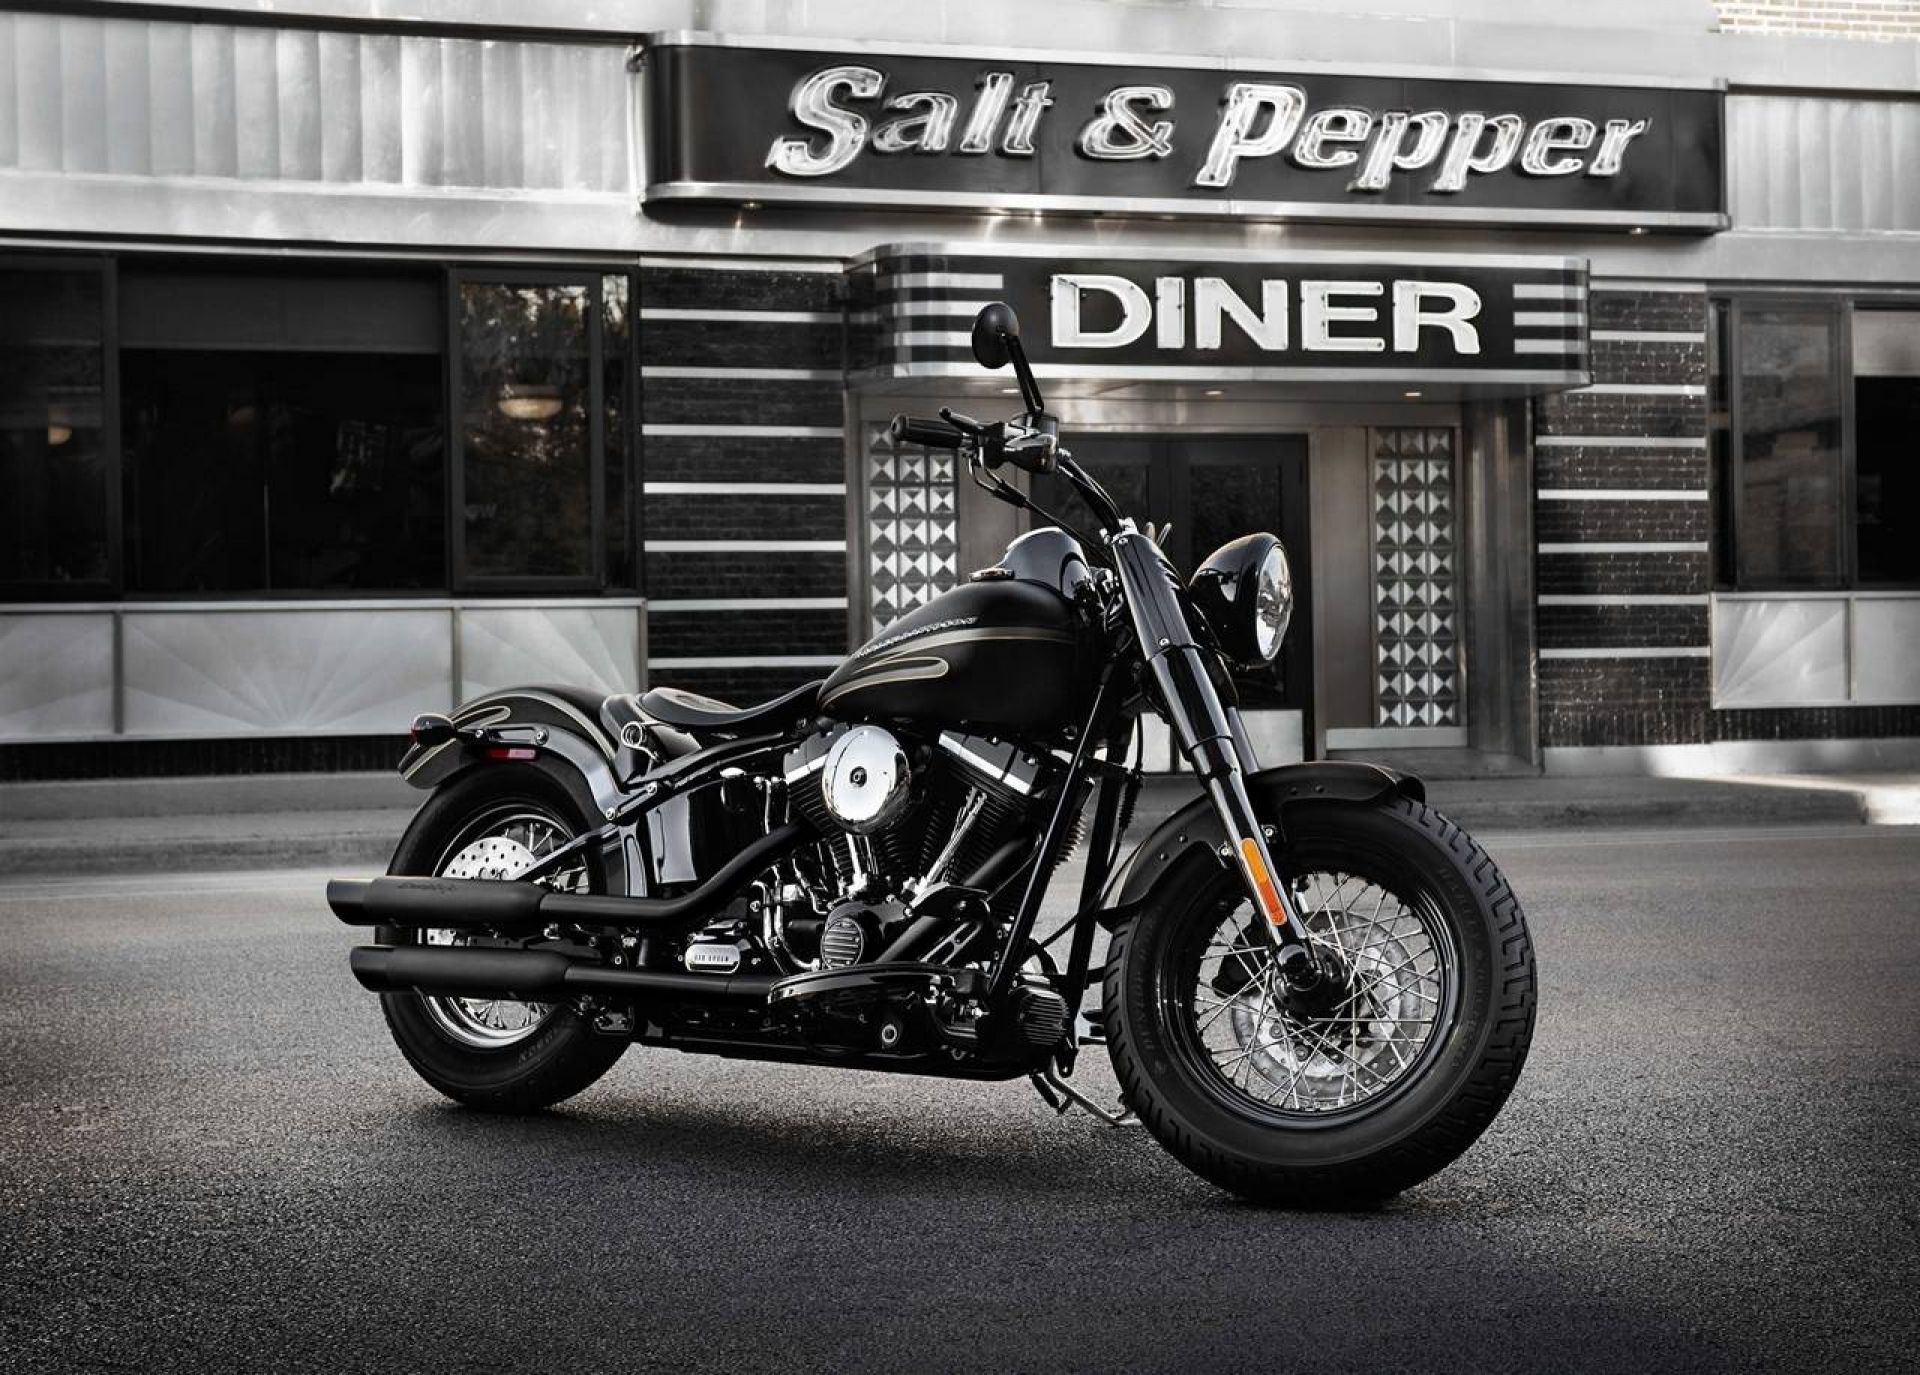 Hd Motorcycle Wallpapers Top Free Hd Motorcycle Backgrounds Wallpaperaccess